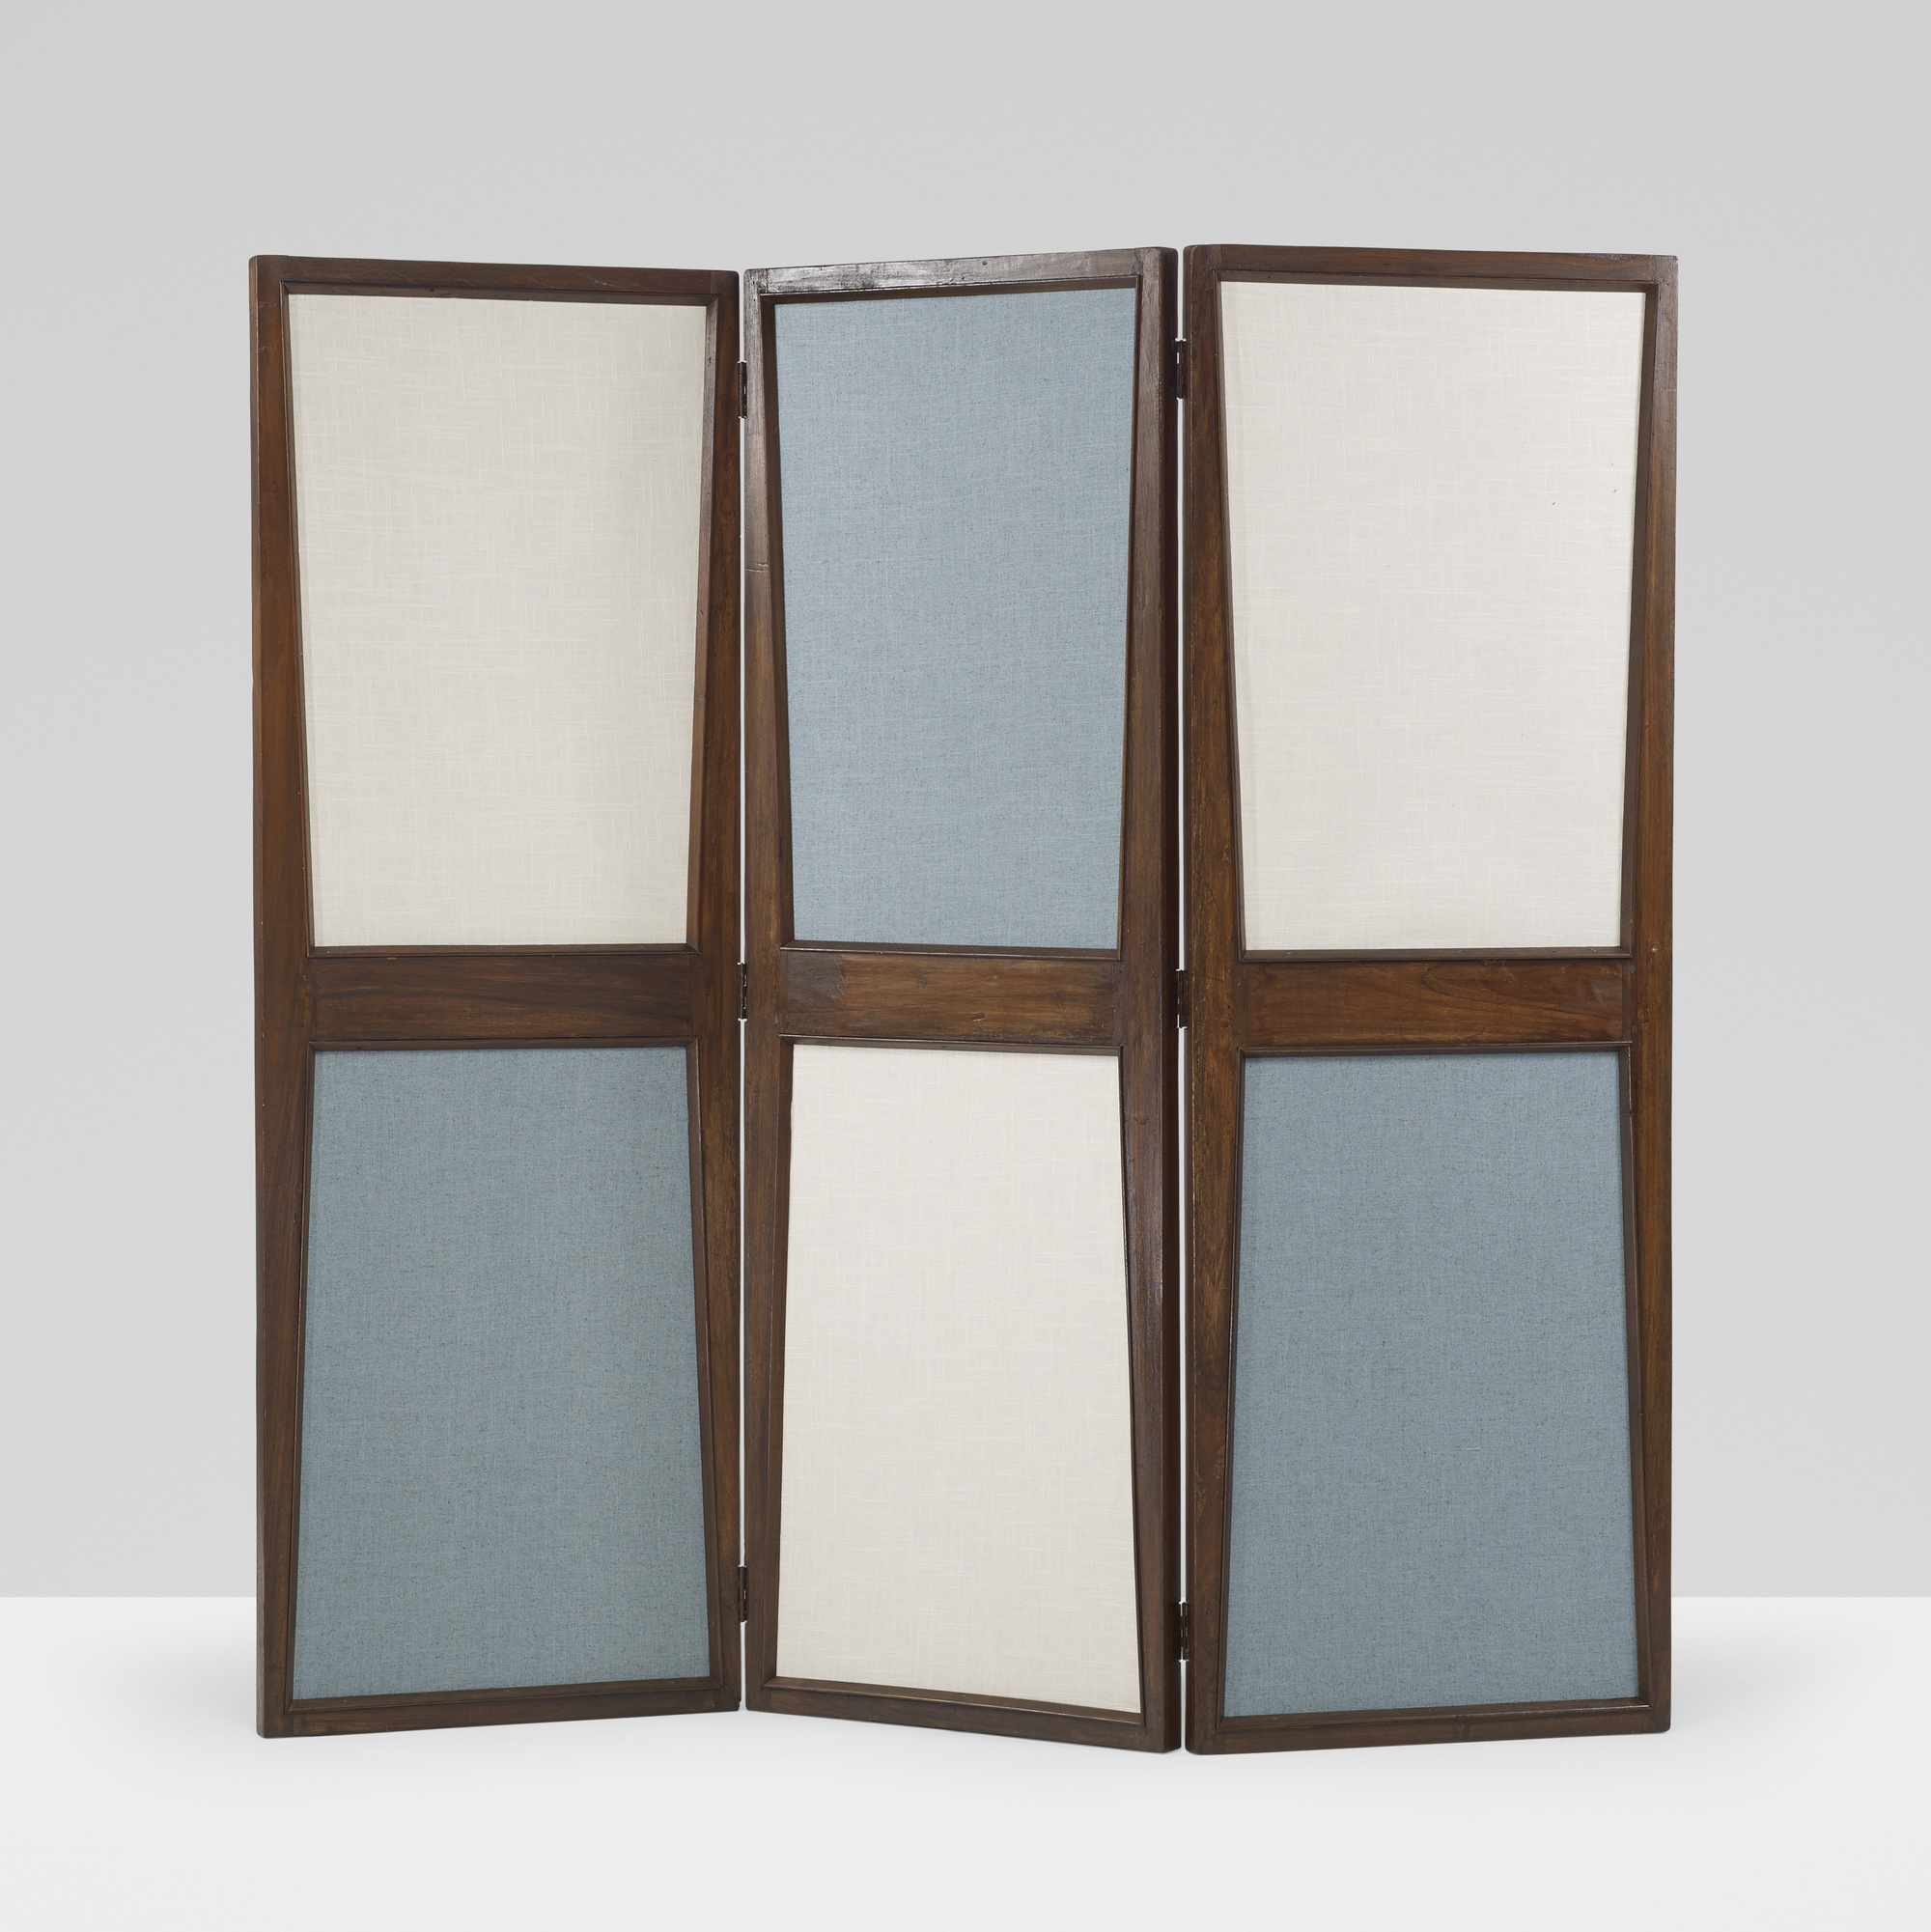 112: Pierre Jeanneret / folding screen from the Administrative buildings, Chandigarh (1 of 1)